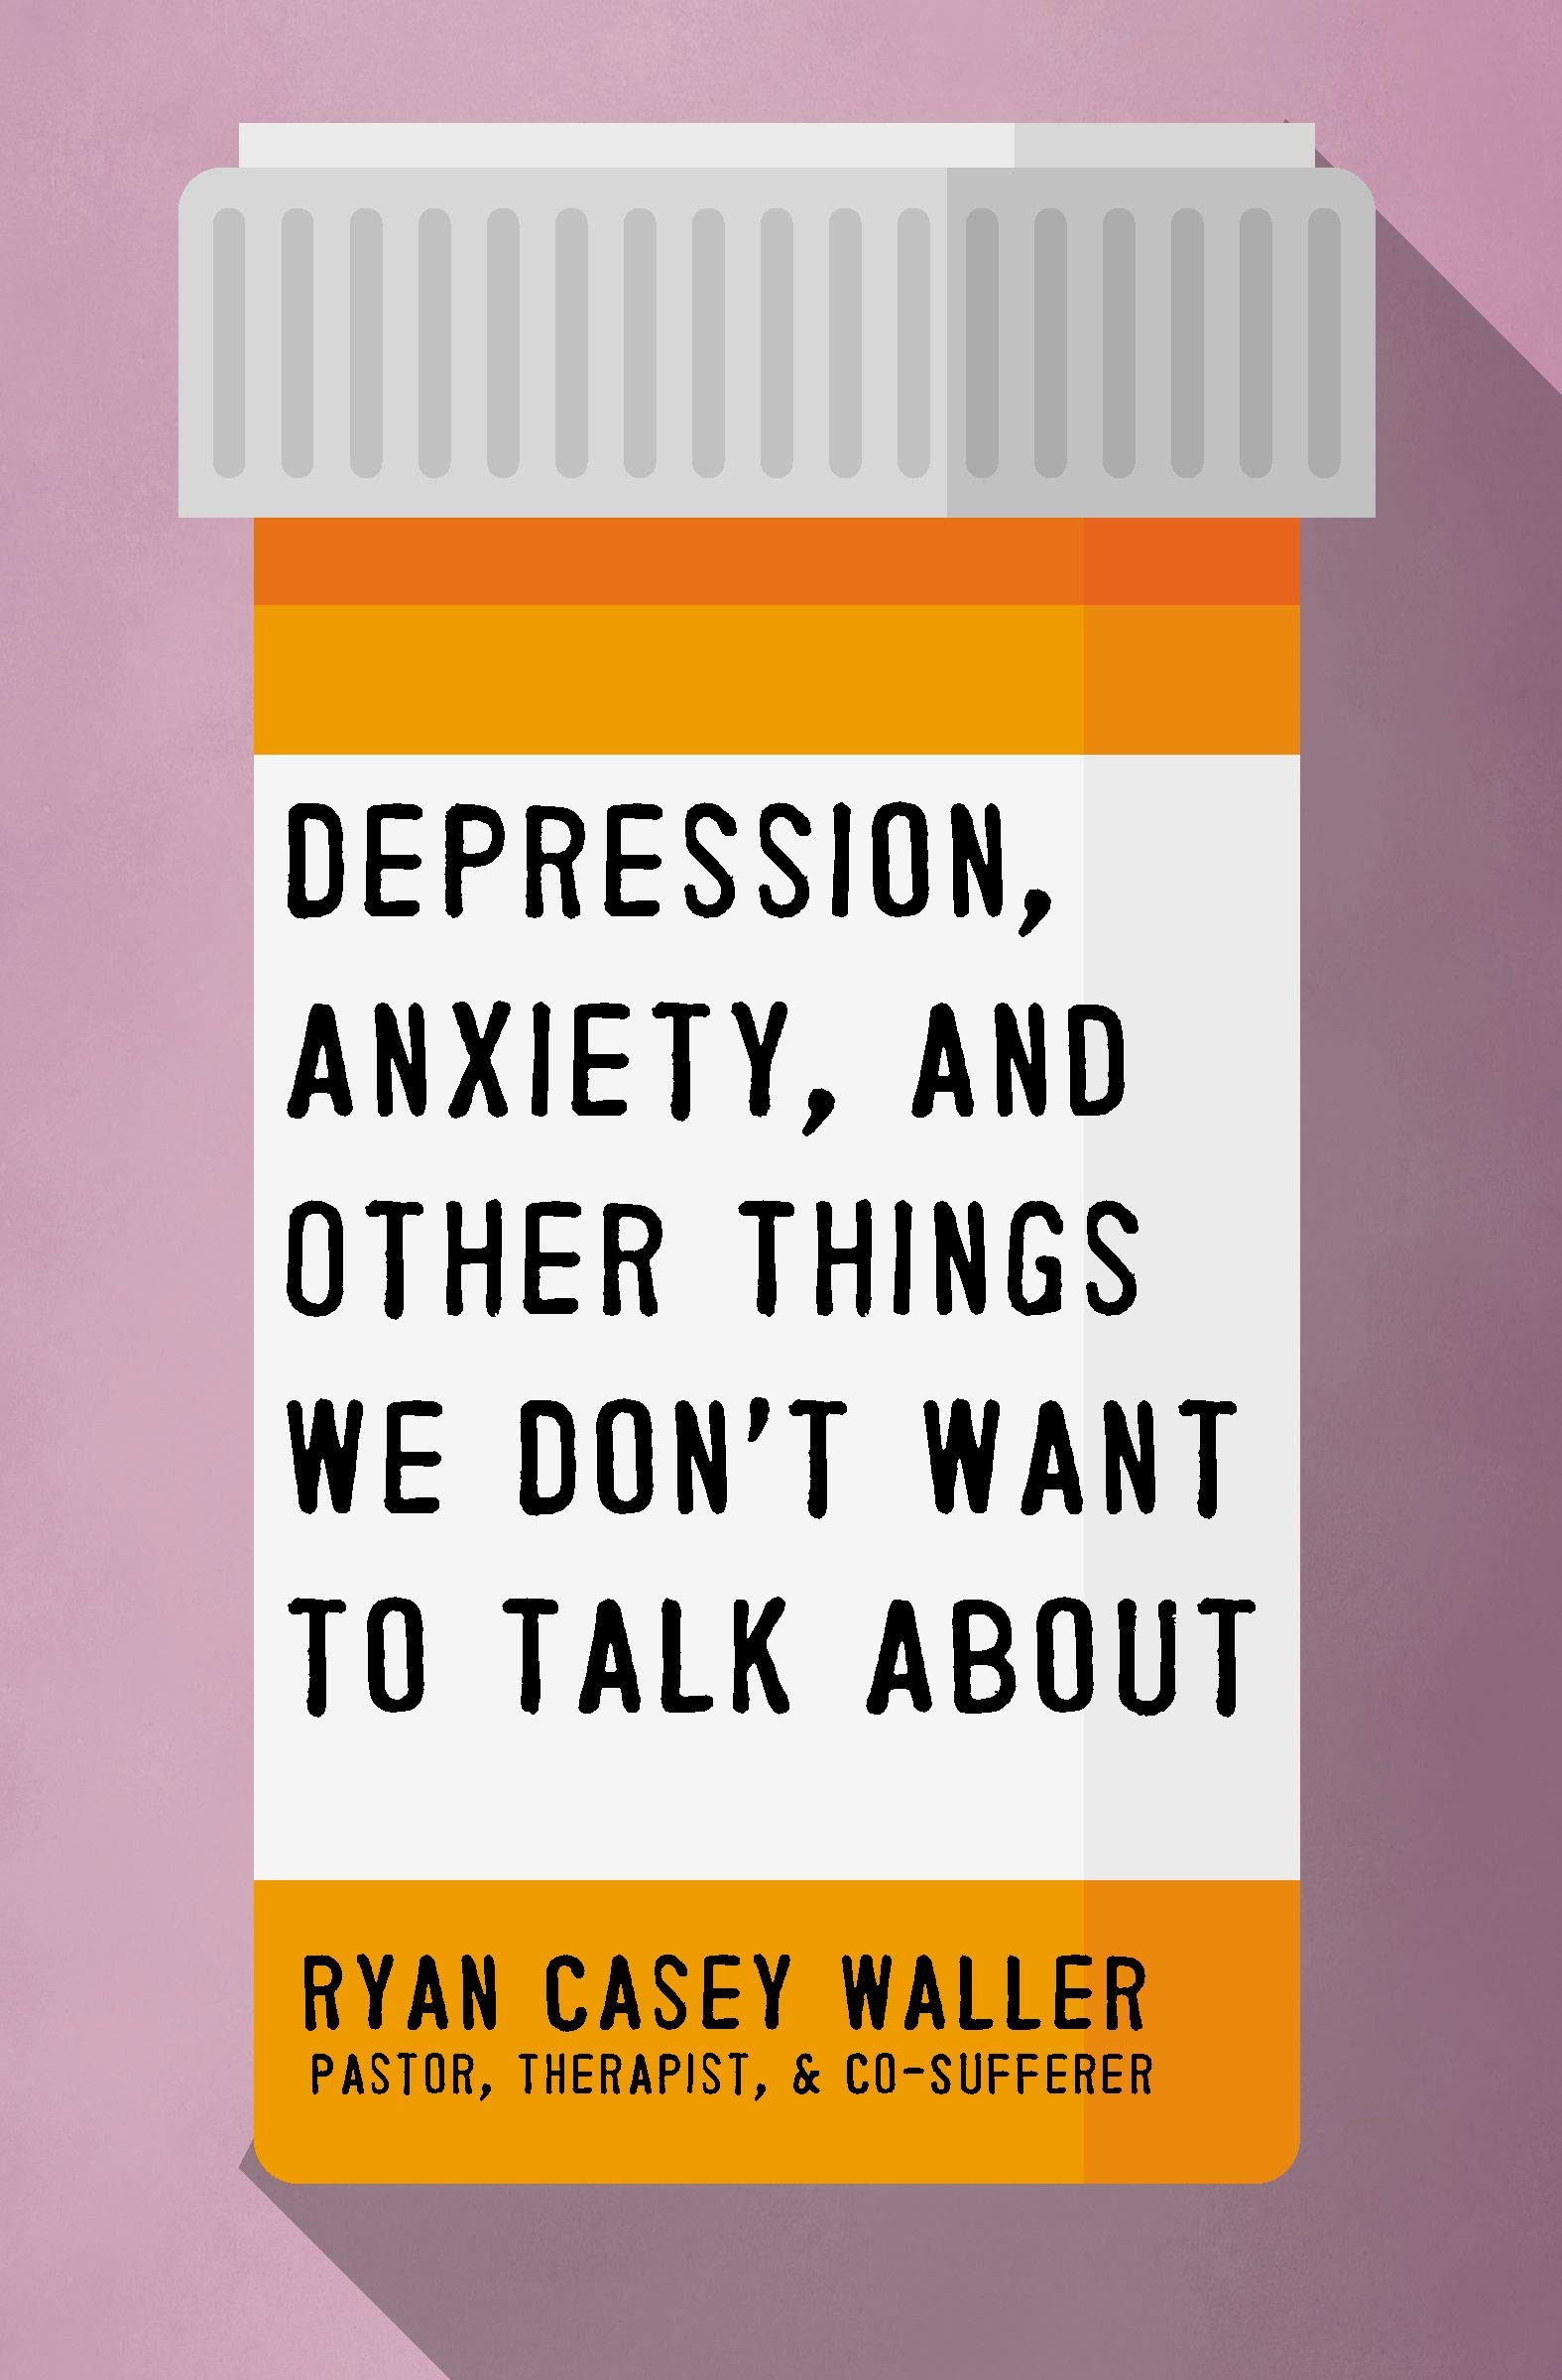 Depression, Anxiety, and Other Things We Don't Want to Talk About: Waller, Ryan Casey: 9781400221325: Amazon.com: Books